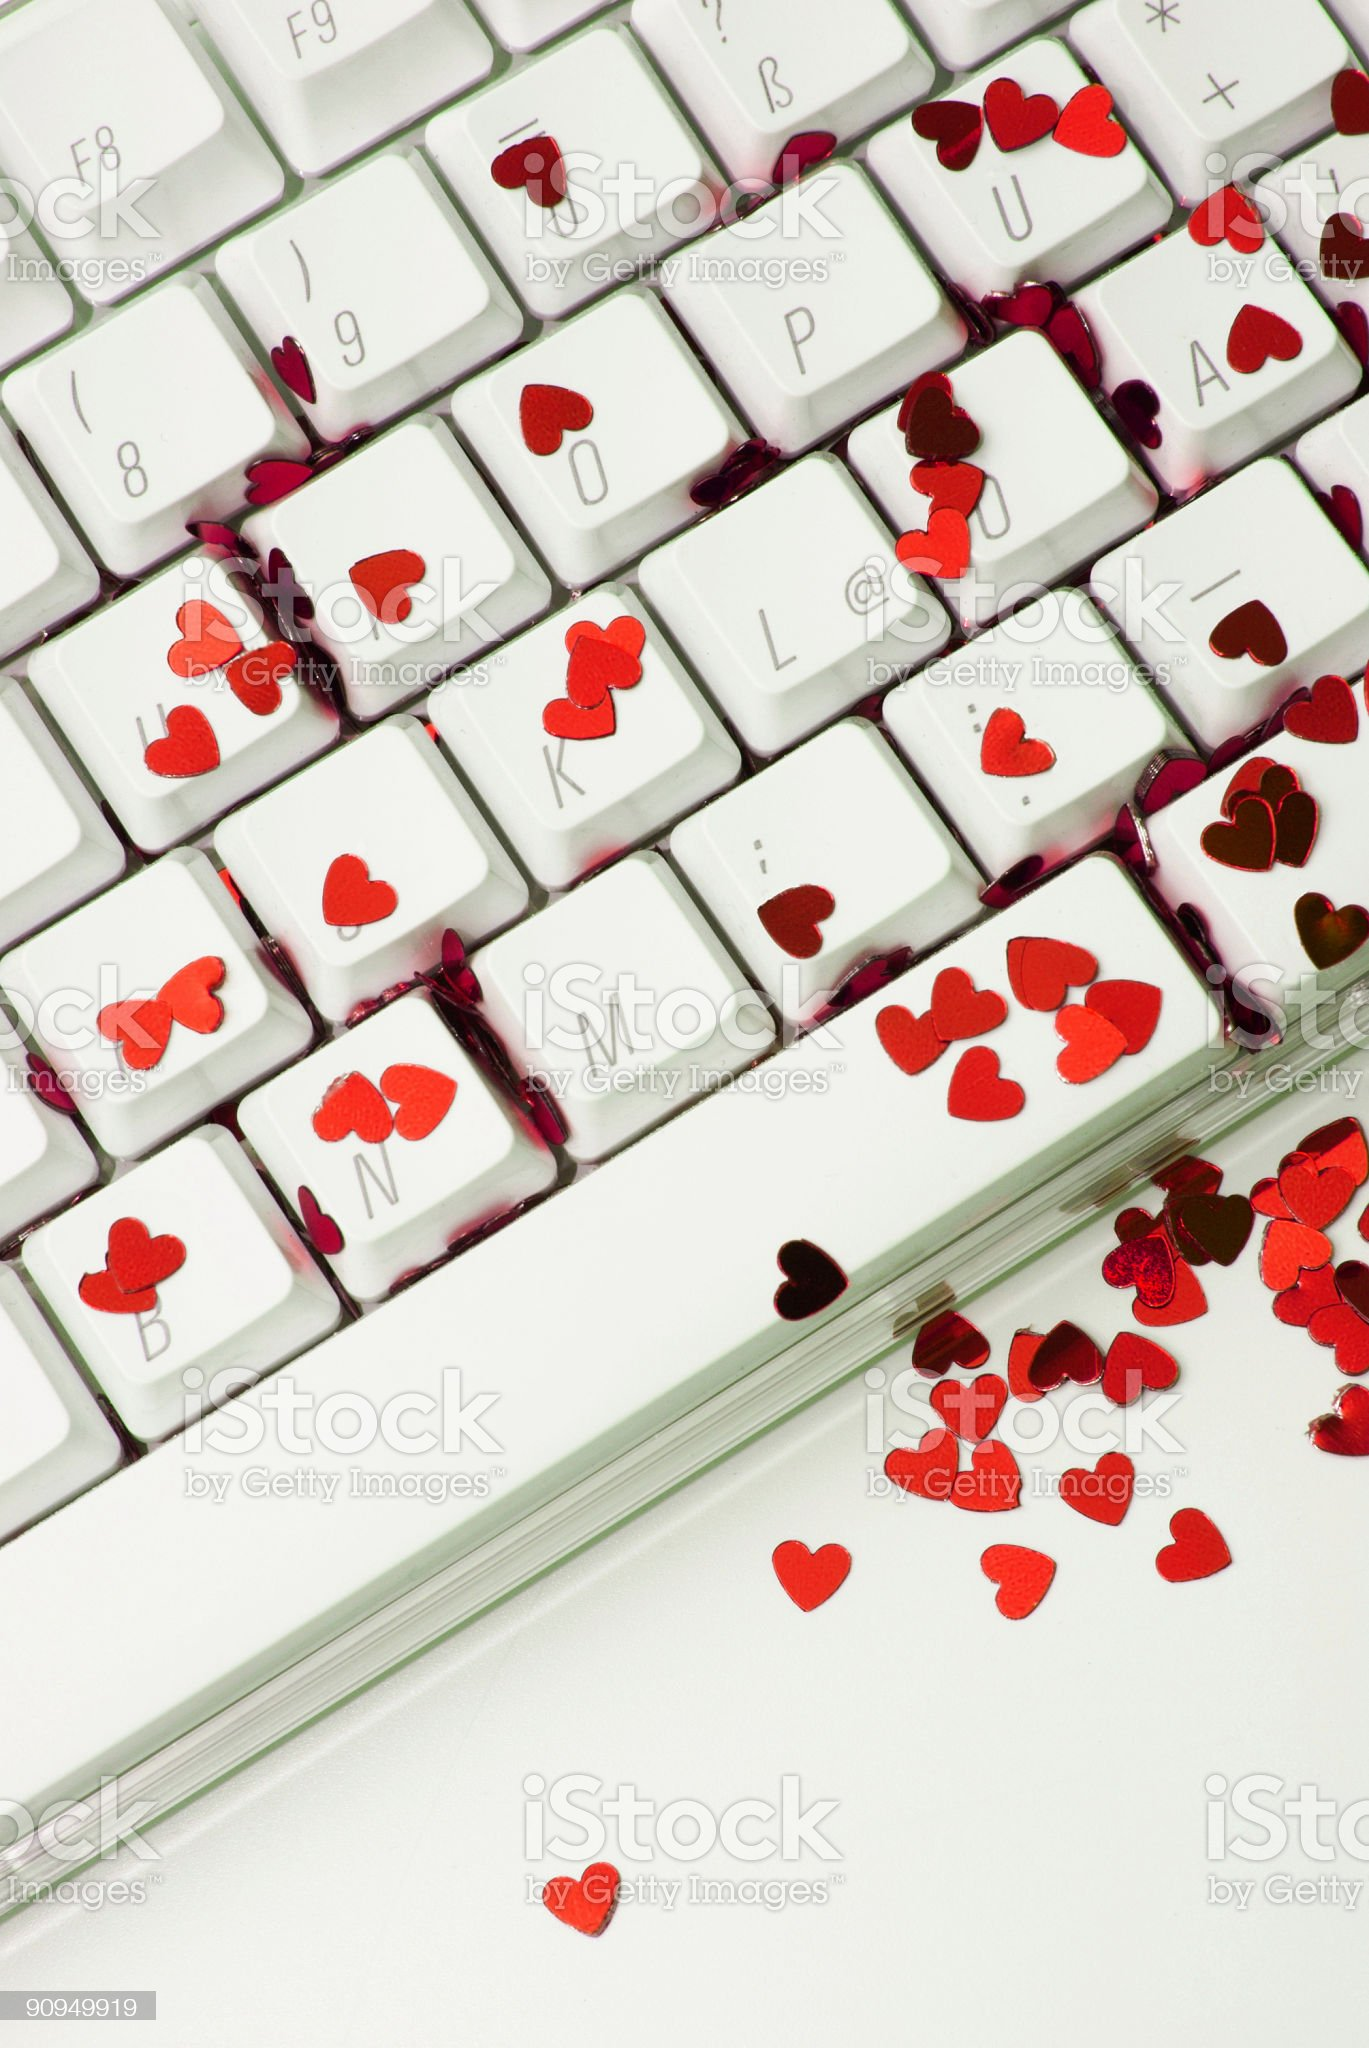 Red hearts online royalty-free stock photo